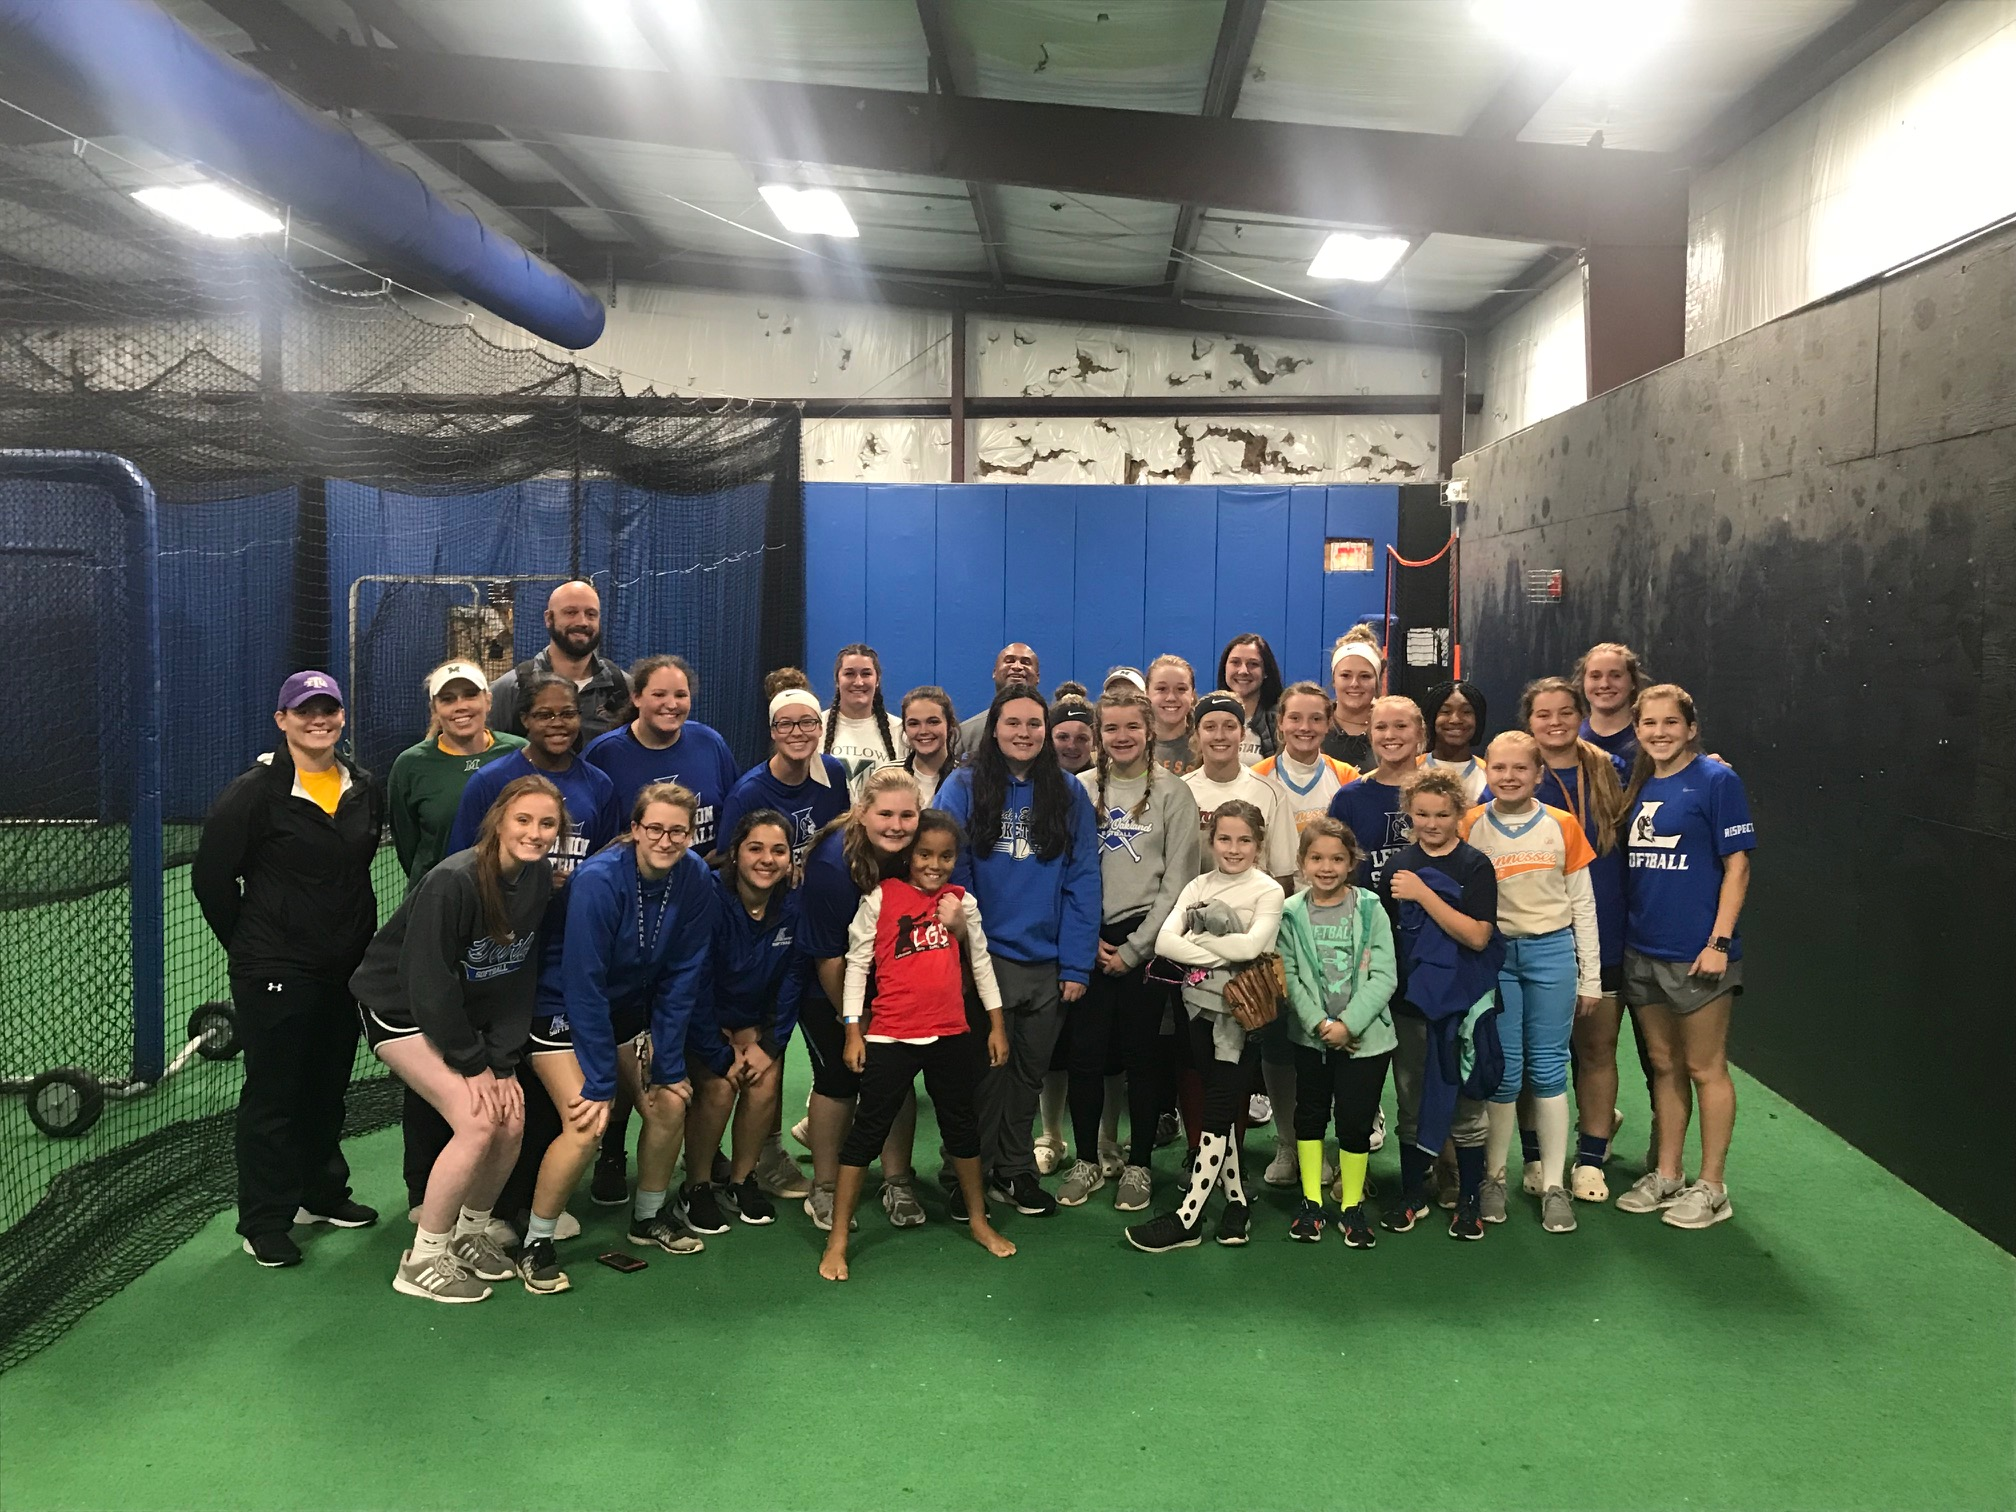 Softball Fundamentals Clinic Highlights